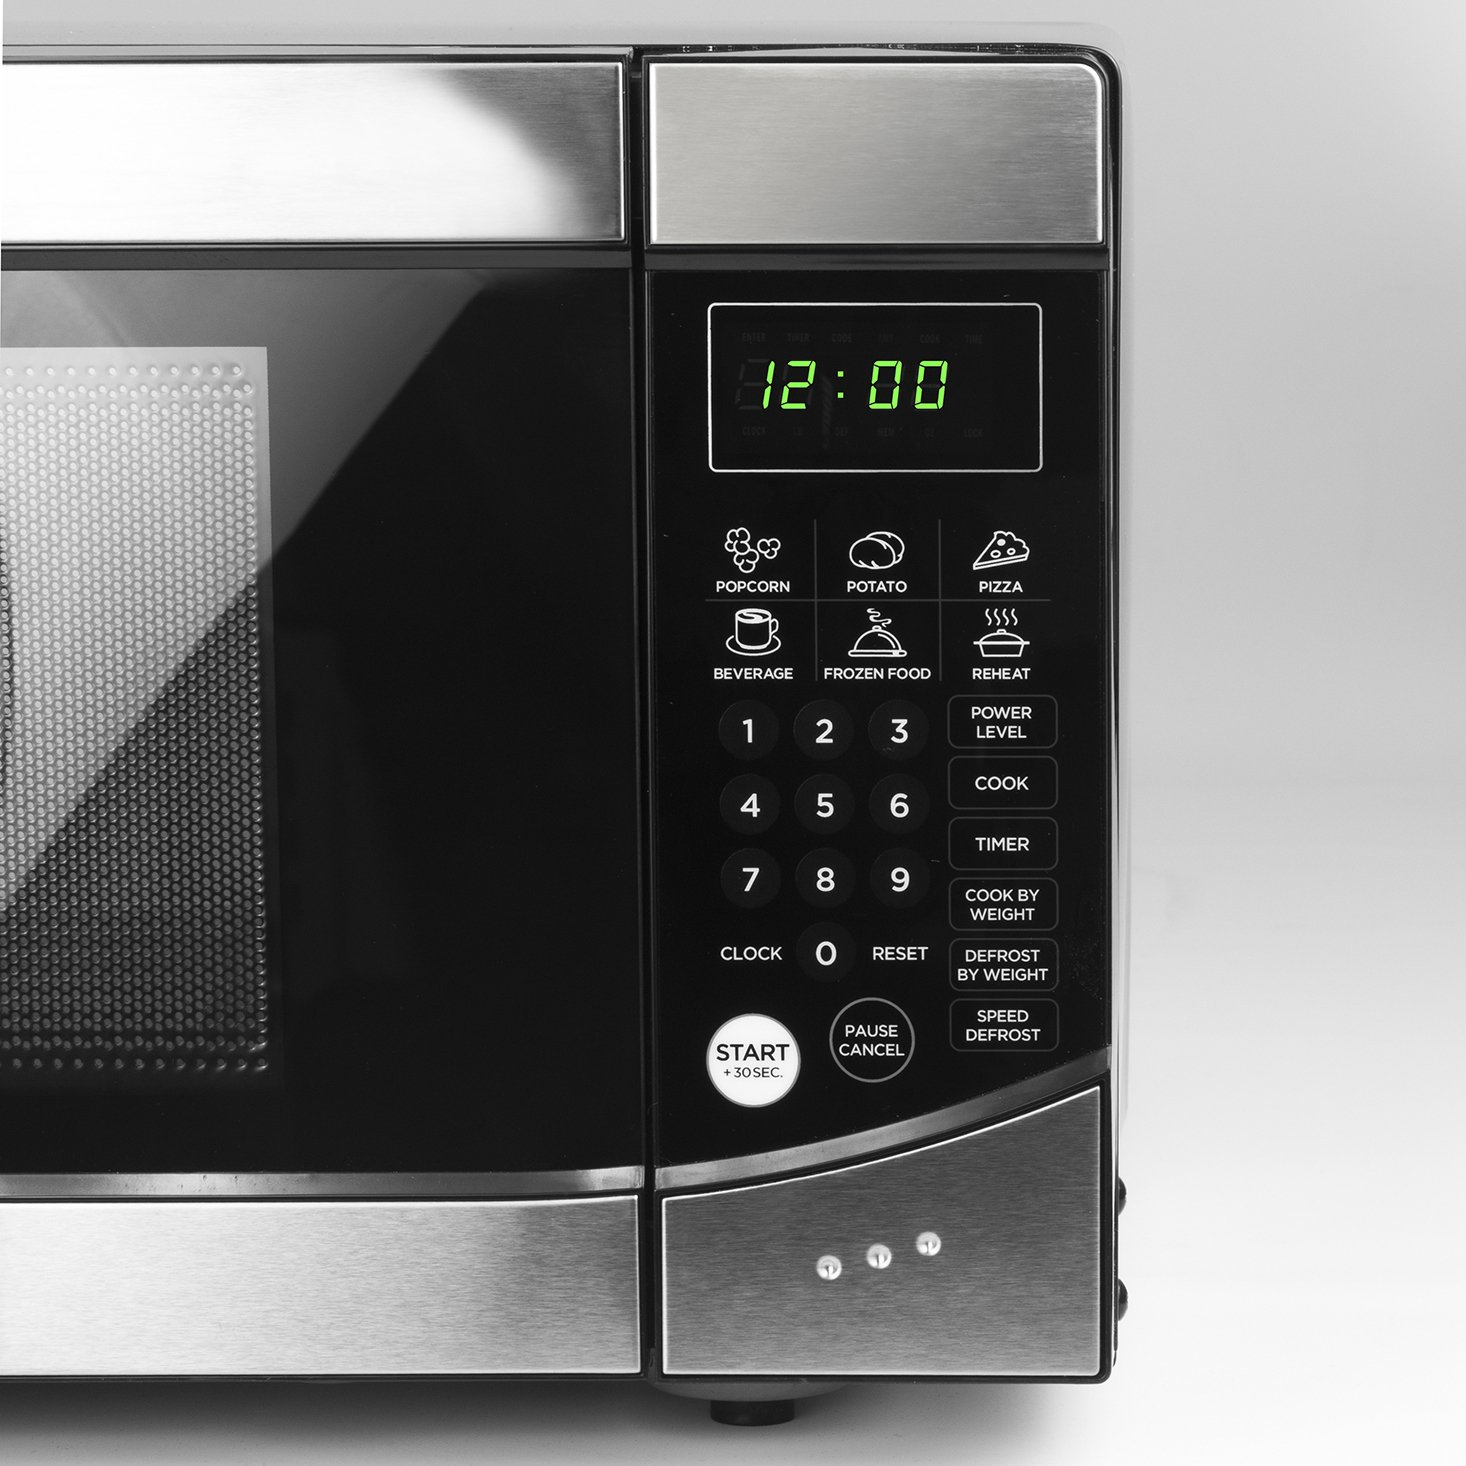 Westinghouse, WM009, Countertop Microwave Oven, 900 Watt, 0.9 Cubic Feet, Stainless Steel Front, Black Cabinet, Small by Westinghouse (Image #3)